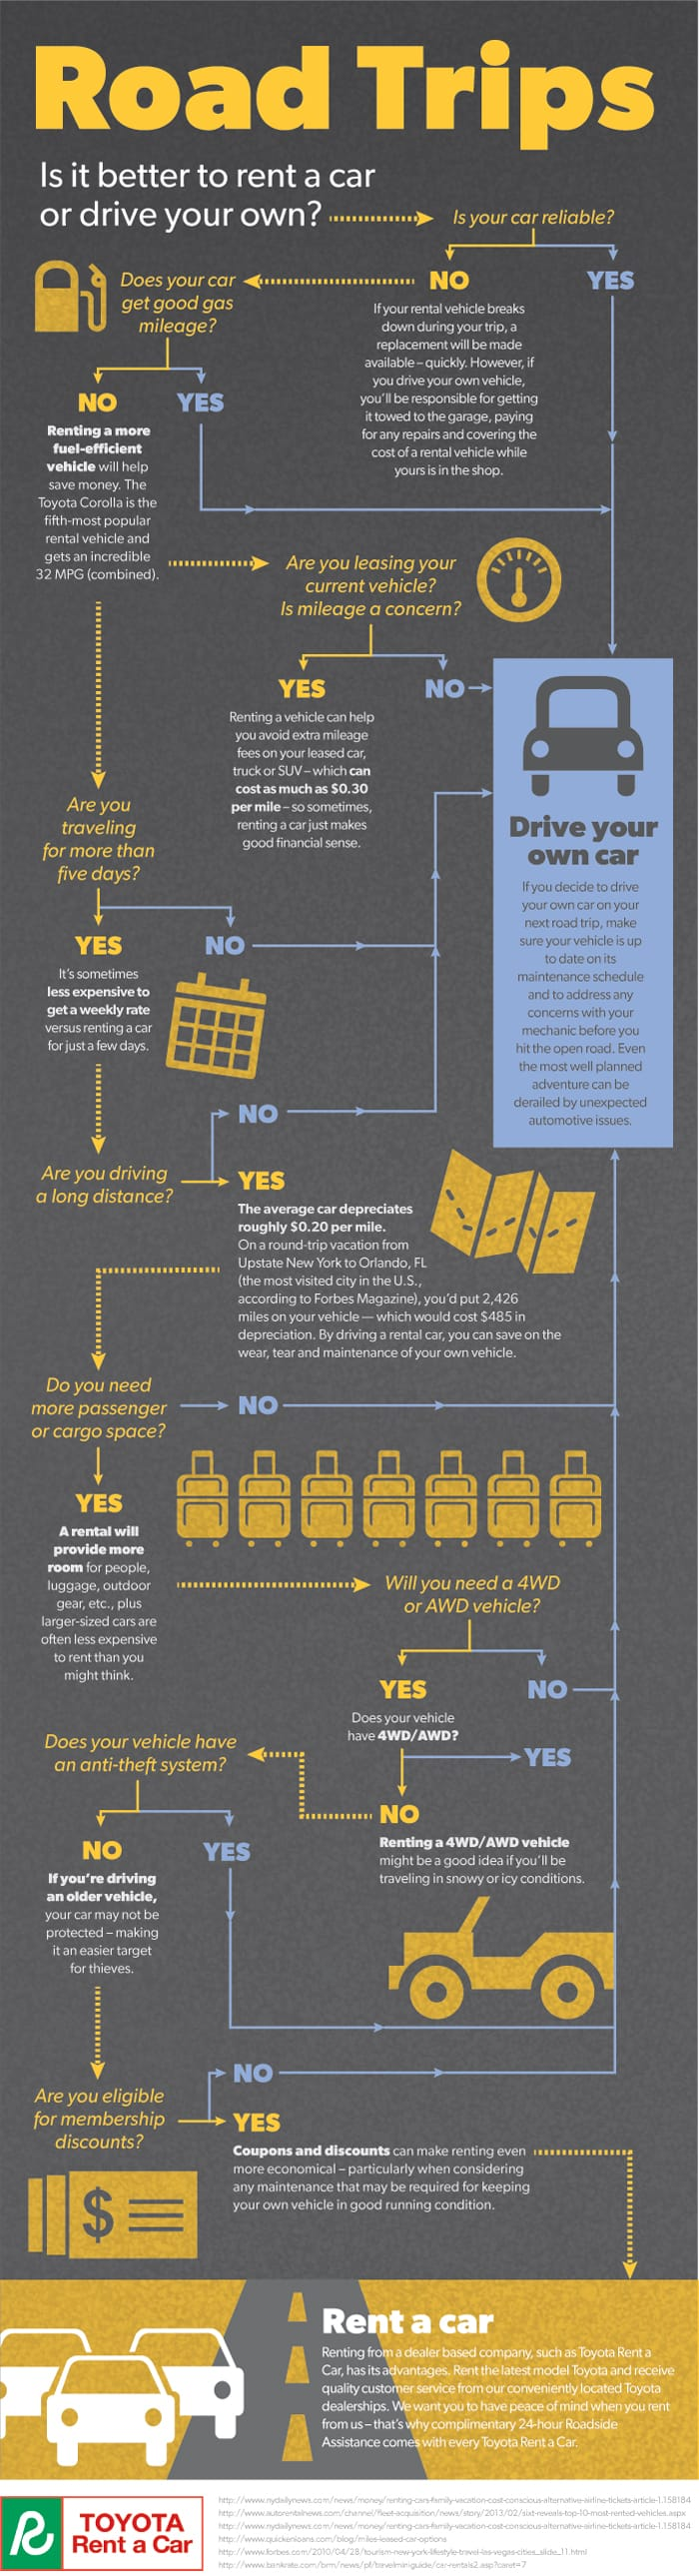 Embed road trip infographic rent a car vs drive your own on your site